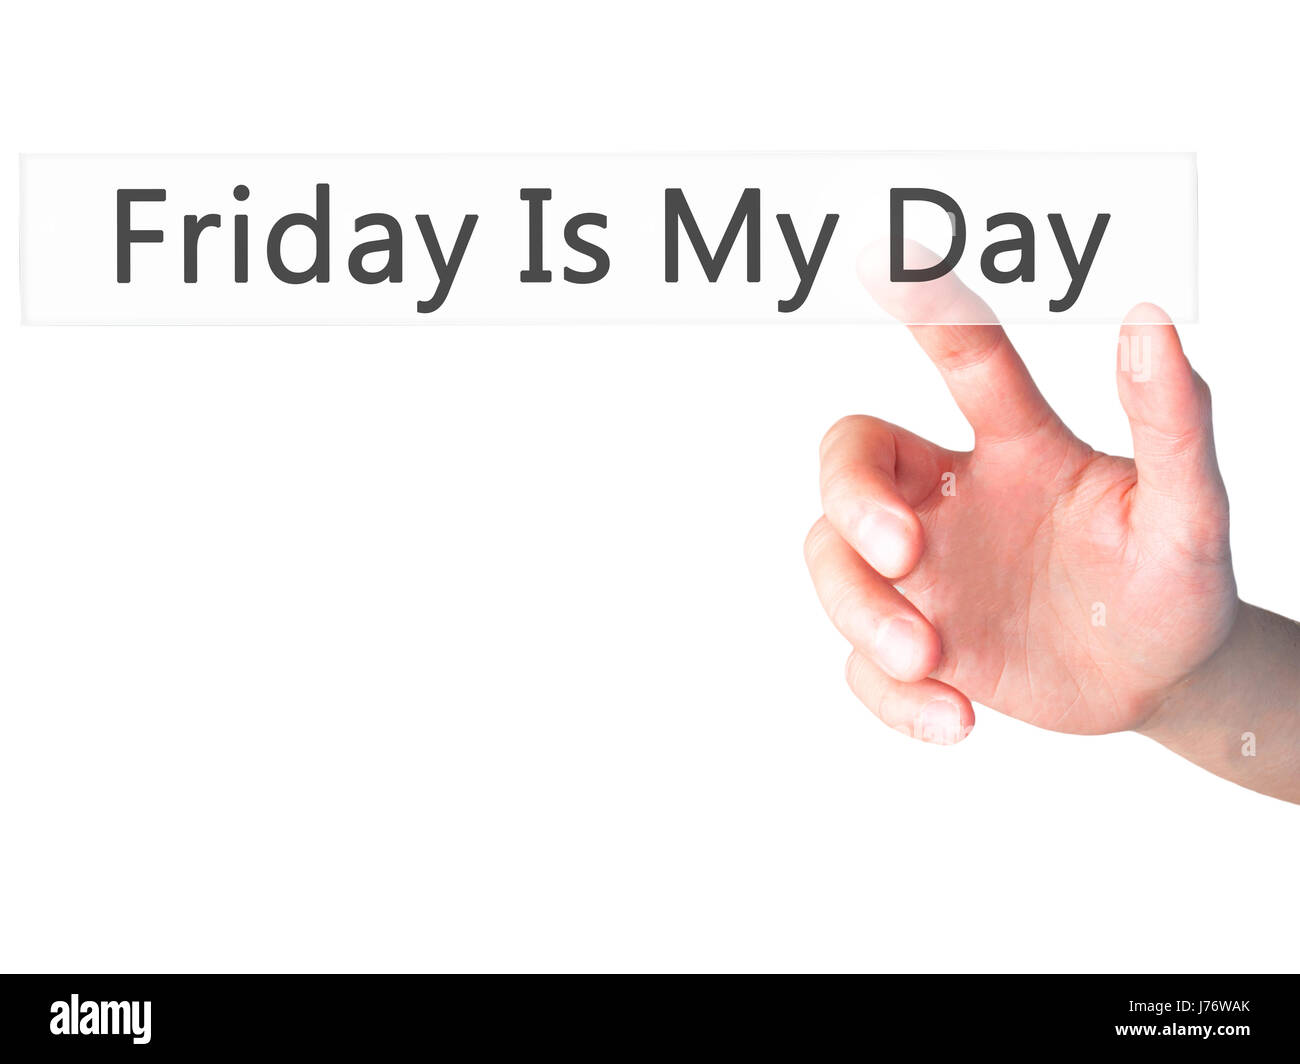 Friday Is My Day - Hand pressing a button on blurred background concept . Business, technology, internet concept. - Stock Image